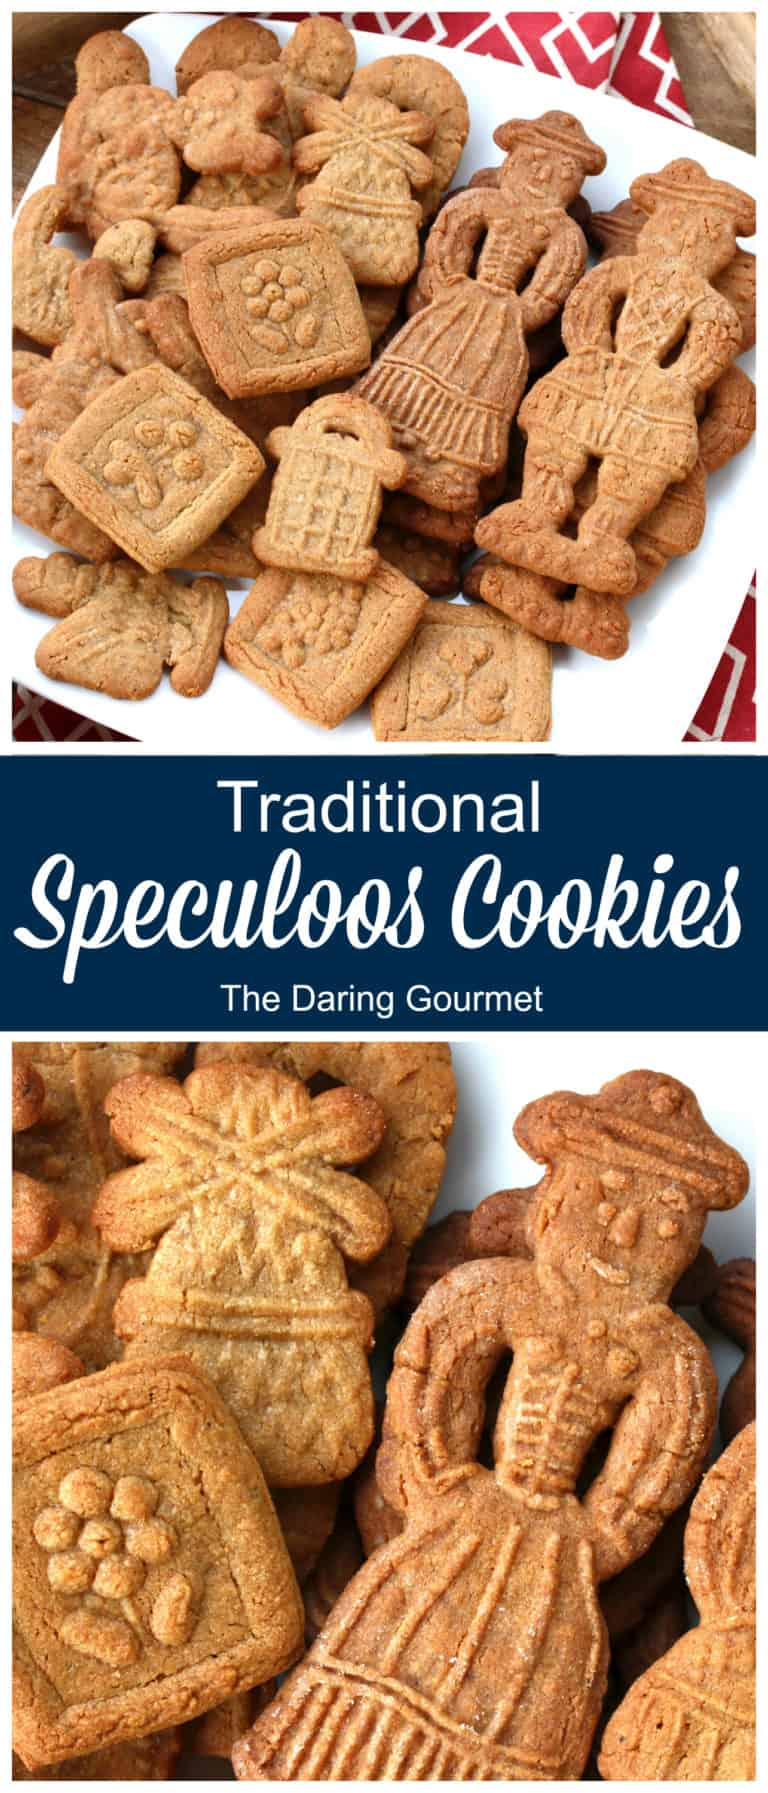 speculoos cookies recipe homemade biscoff cookies speculaas spekulatius gingerbread biscuits traditional authentic